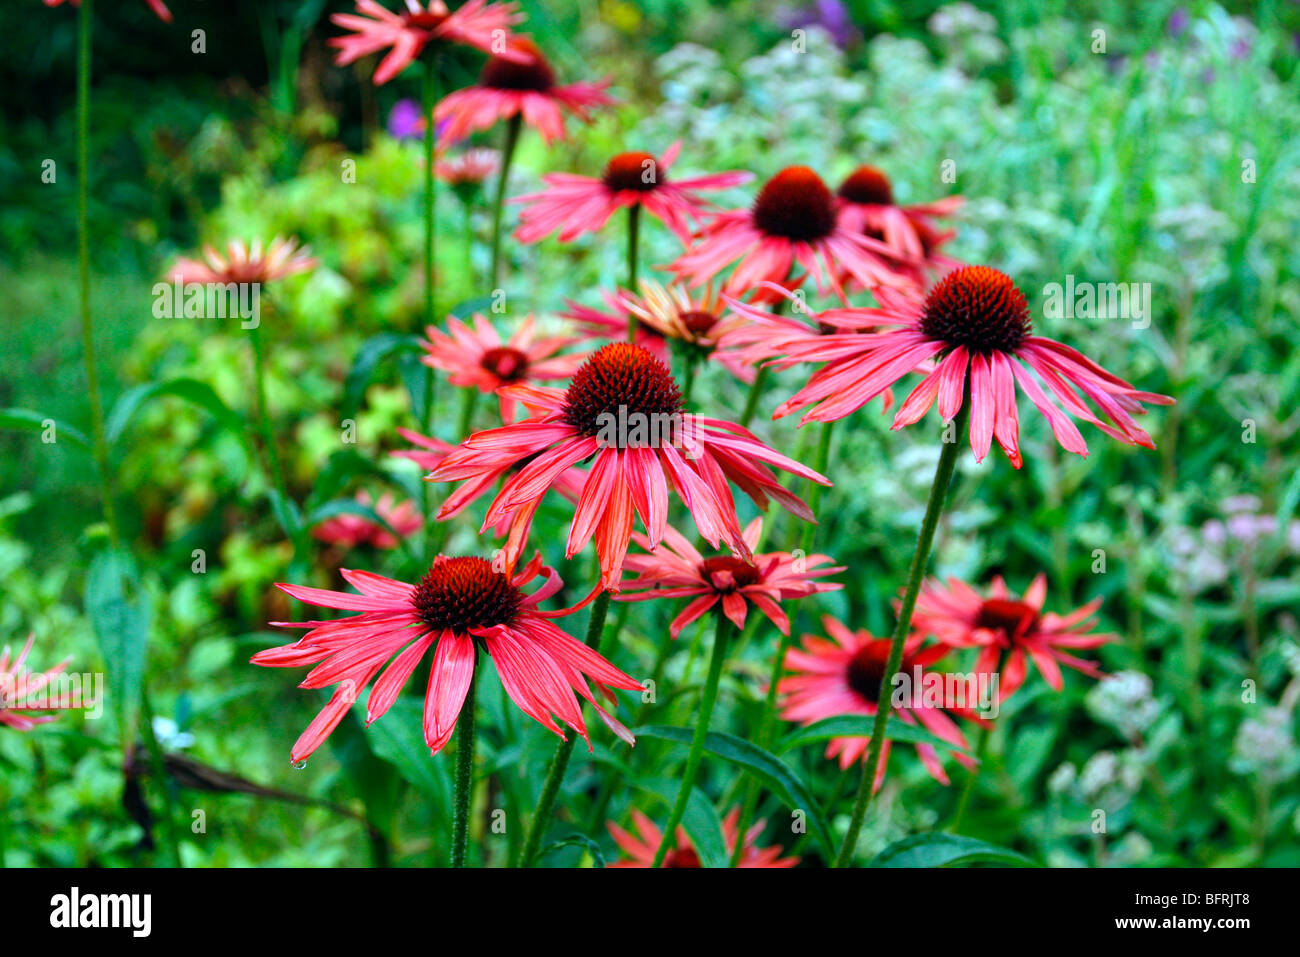 Echinacea 'Hot Summer' from Marco van Noort - Stock Image